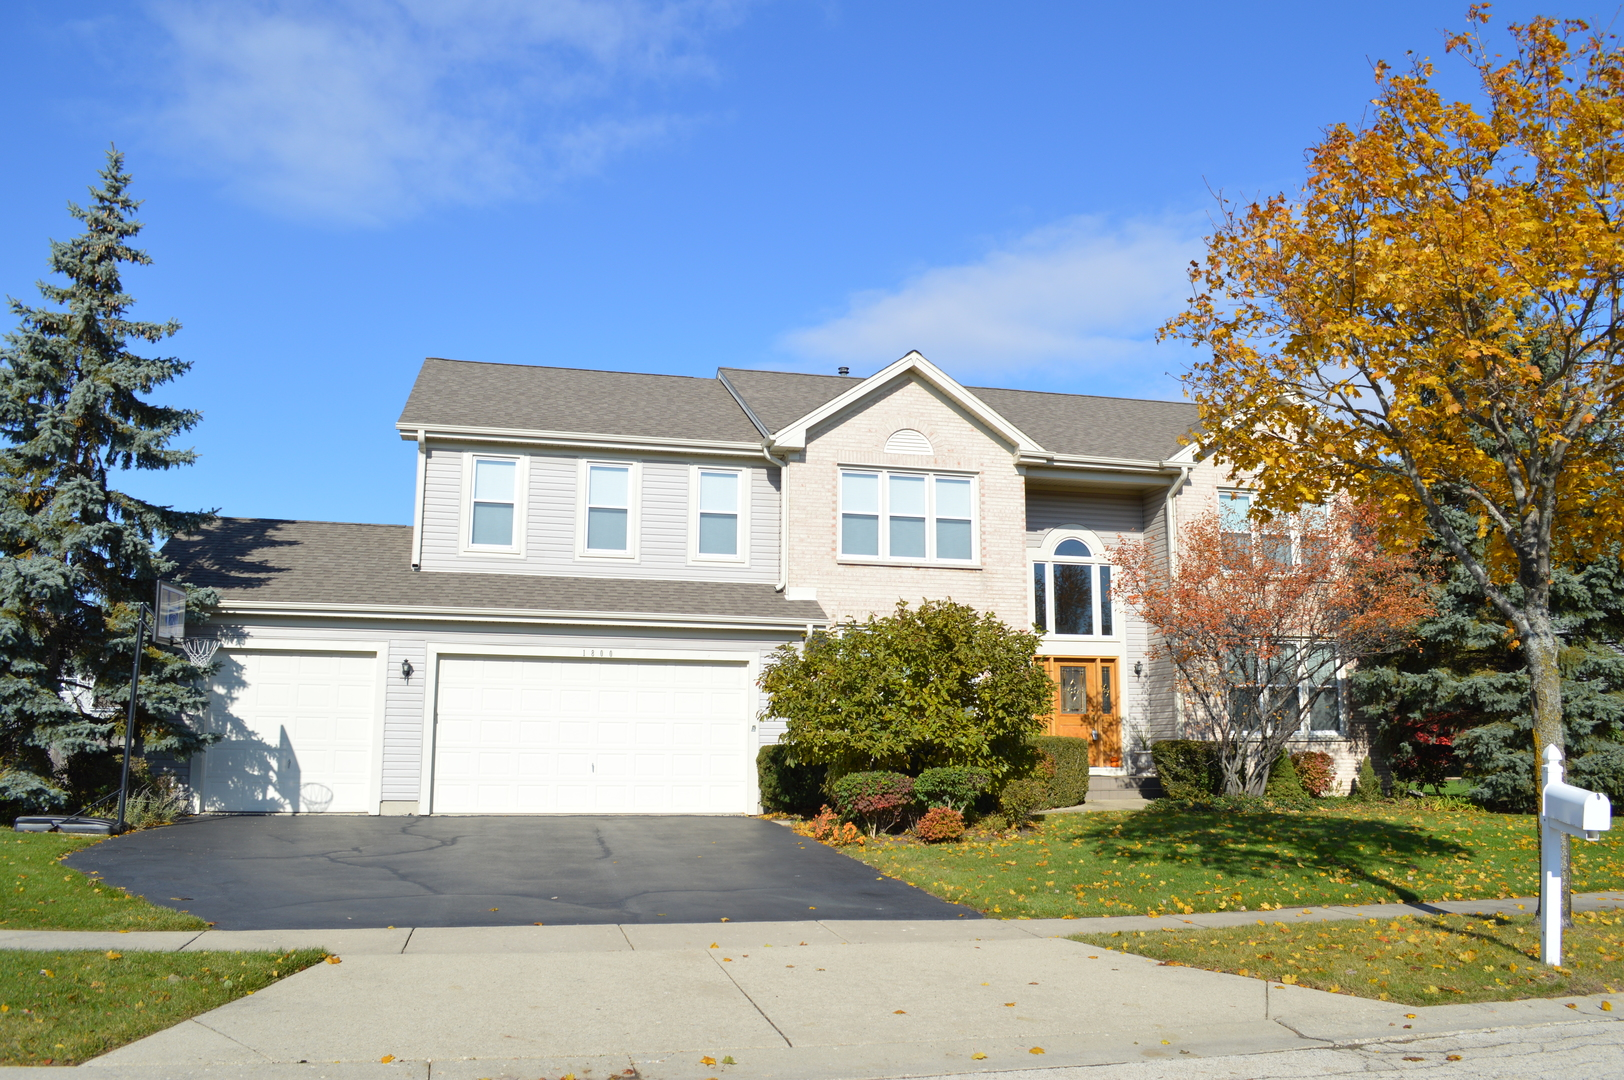 1800 Kensington Drive, Algonquin in Kane County, IL 60102 Home for Sale